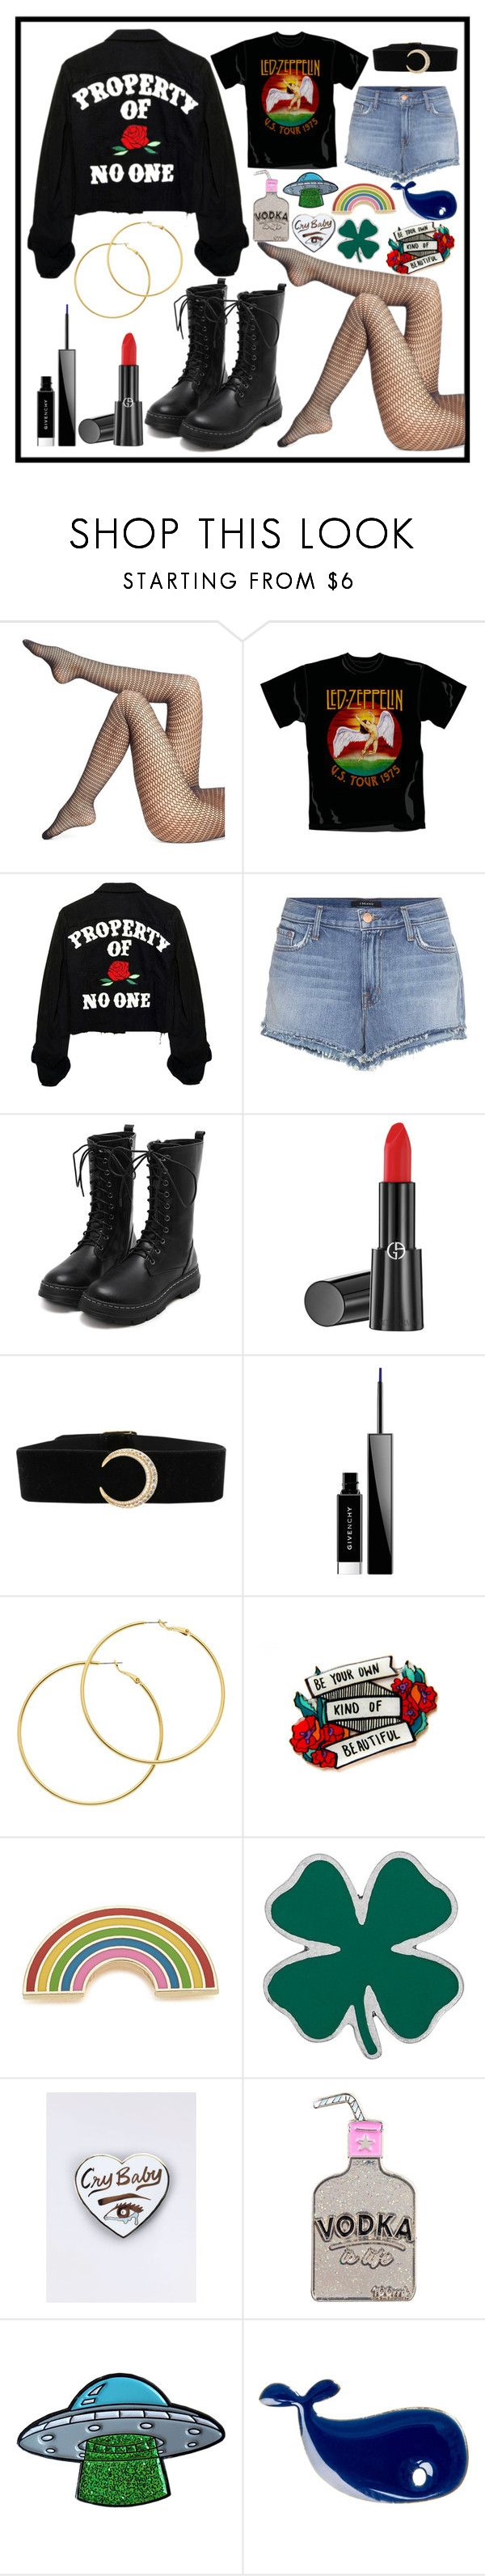 """""""PROPERTY OF NO ONE 🌹"""" by crakjow ❤ liked on Polyvore featuring Wolford, J Brand, Giorgio Armani, Givenchy, Melissa Odabash, Georgia Perry, Lucky Brand and Conran"""